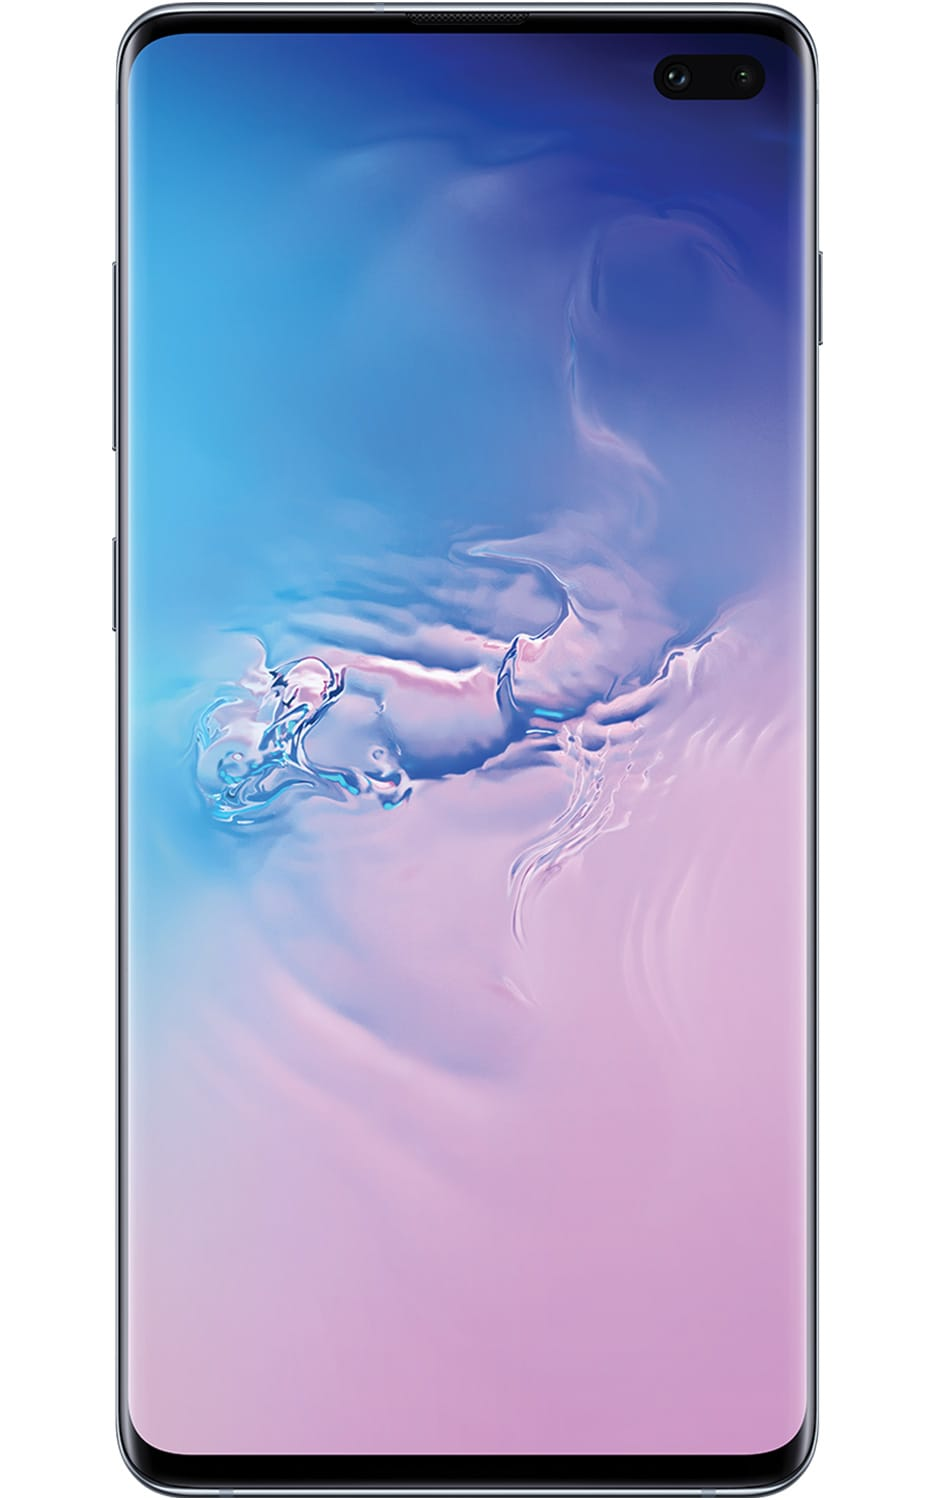 cced6add1 Samsung Galaxy S10 Plus | 128GB, 512GB, 1TB | Prices, Specs, Reviews |  T-Mobile